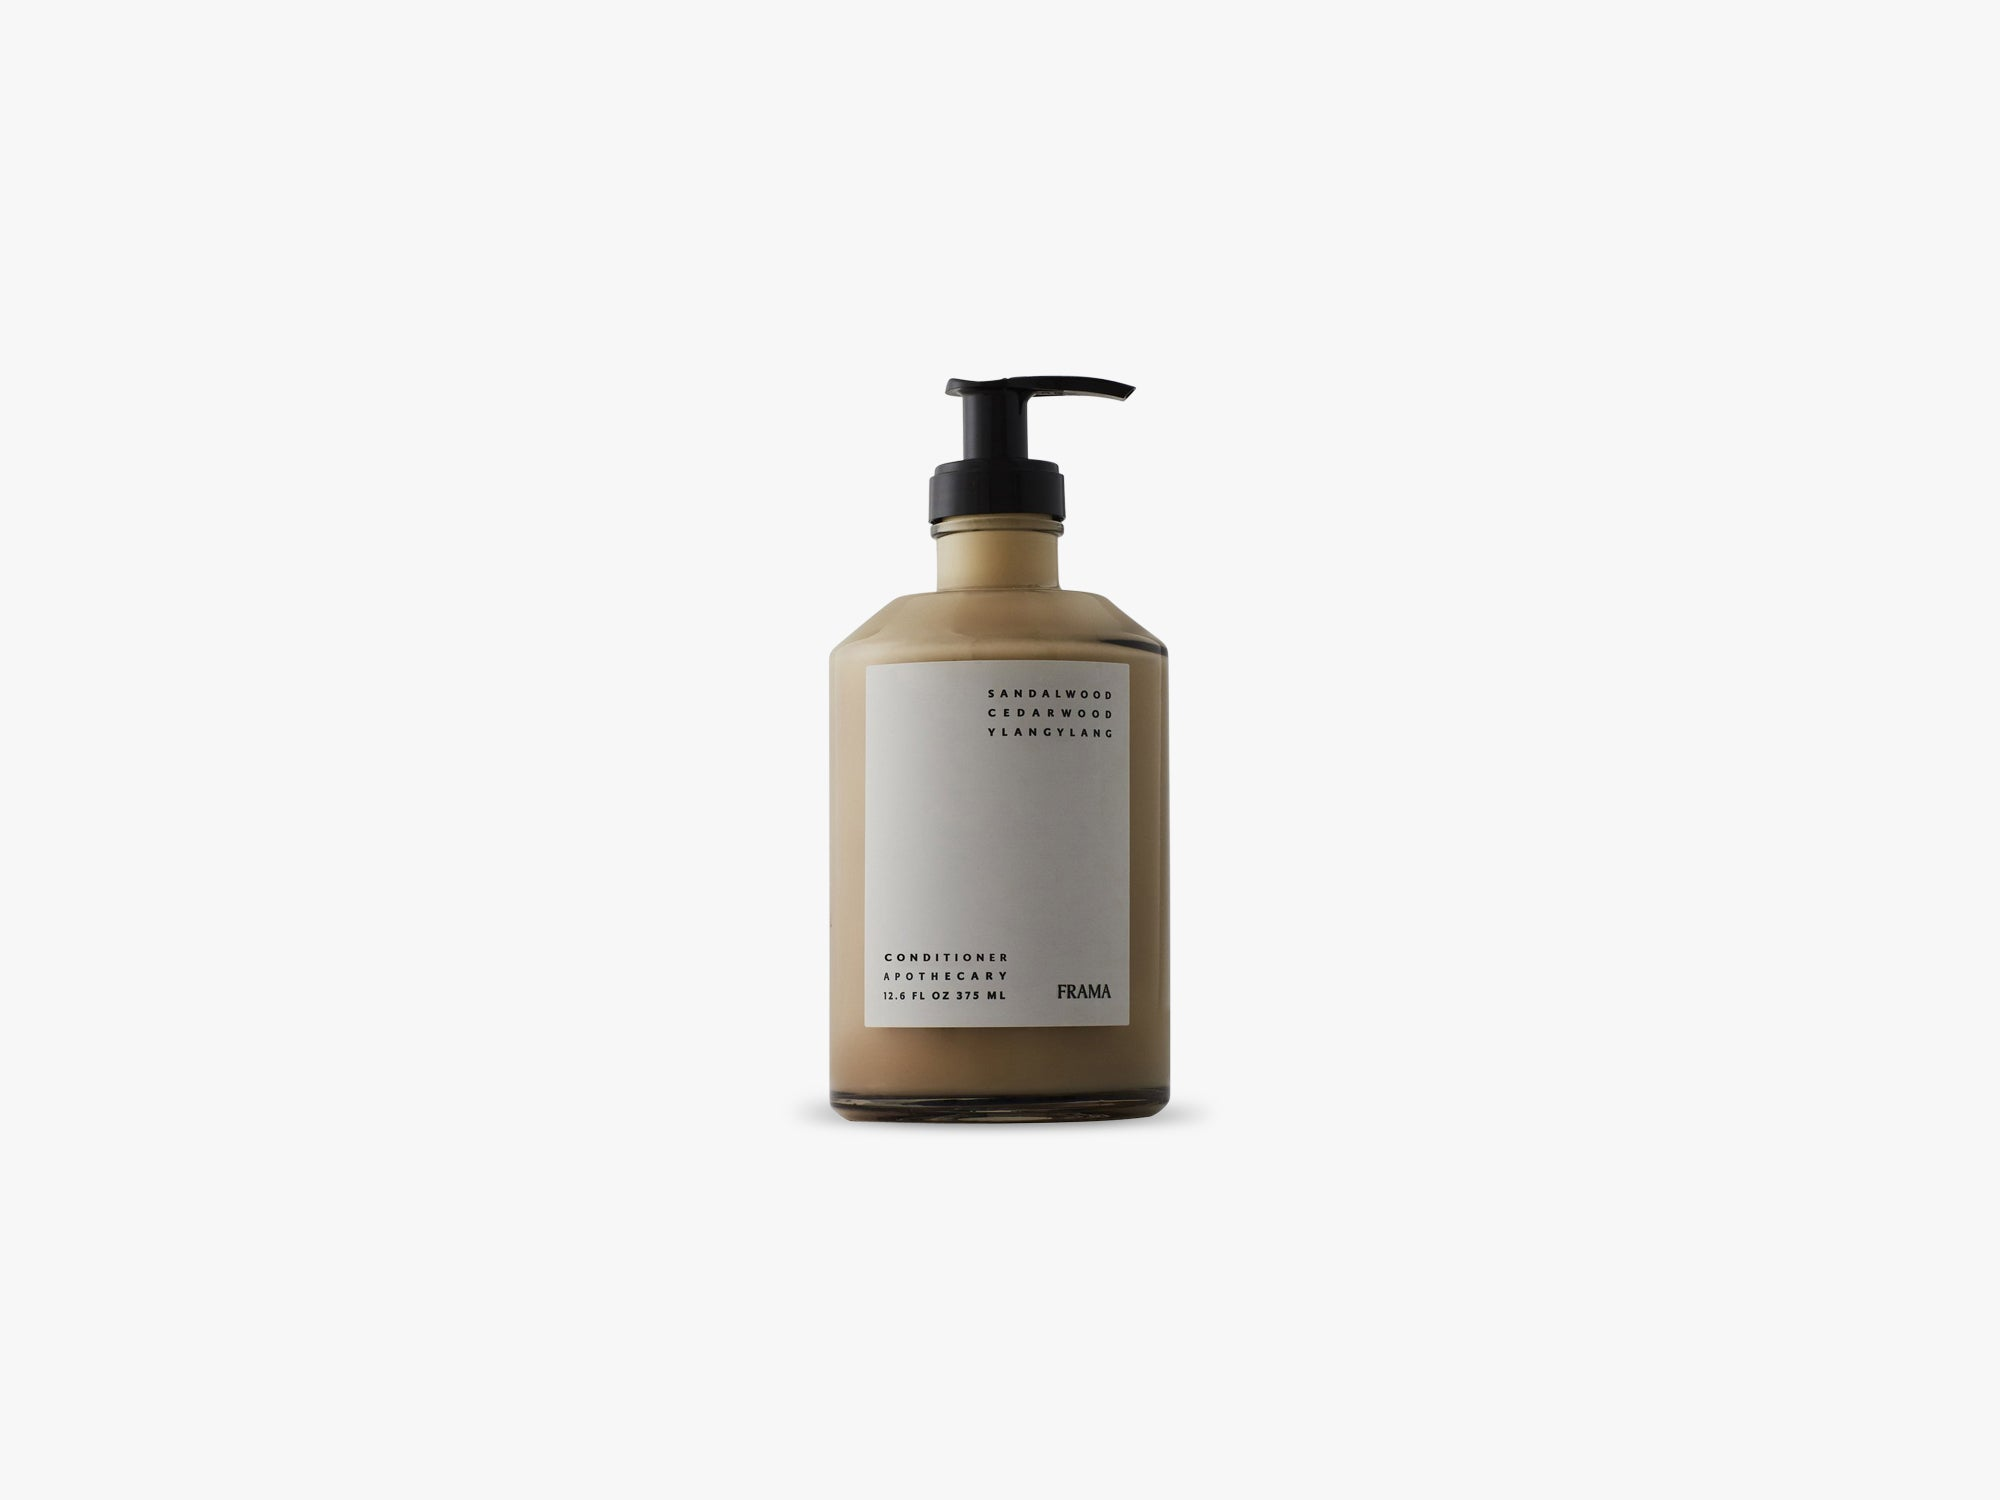 Apothecary Conditioner/Balsam, 375ml fra FRAMA